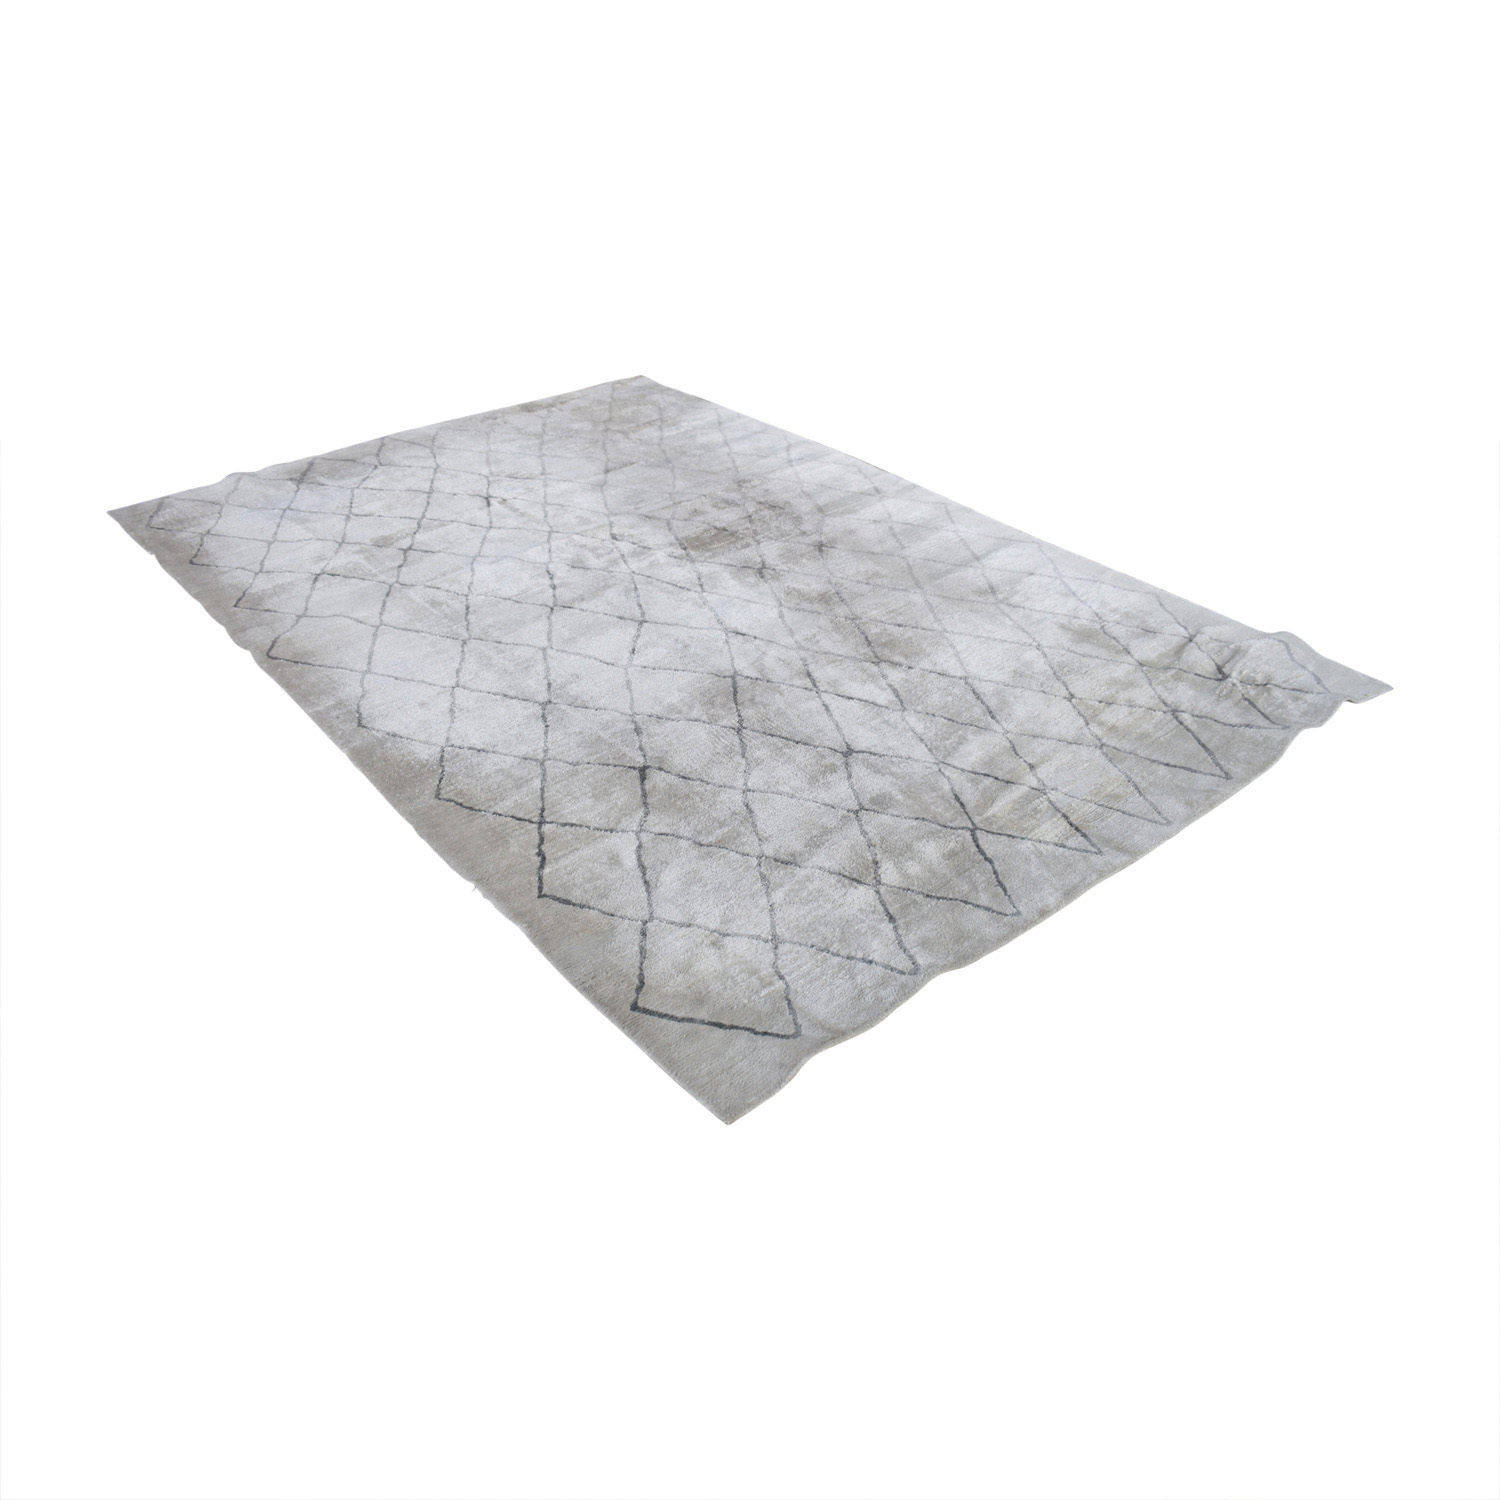 Restoration Hardware Restoration Hardware Arlequin Cream and Grey Rug on sale